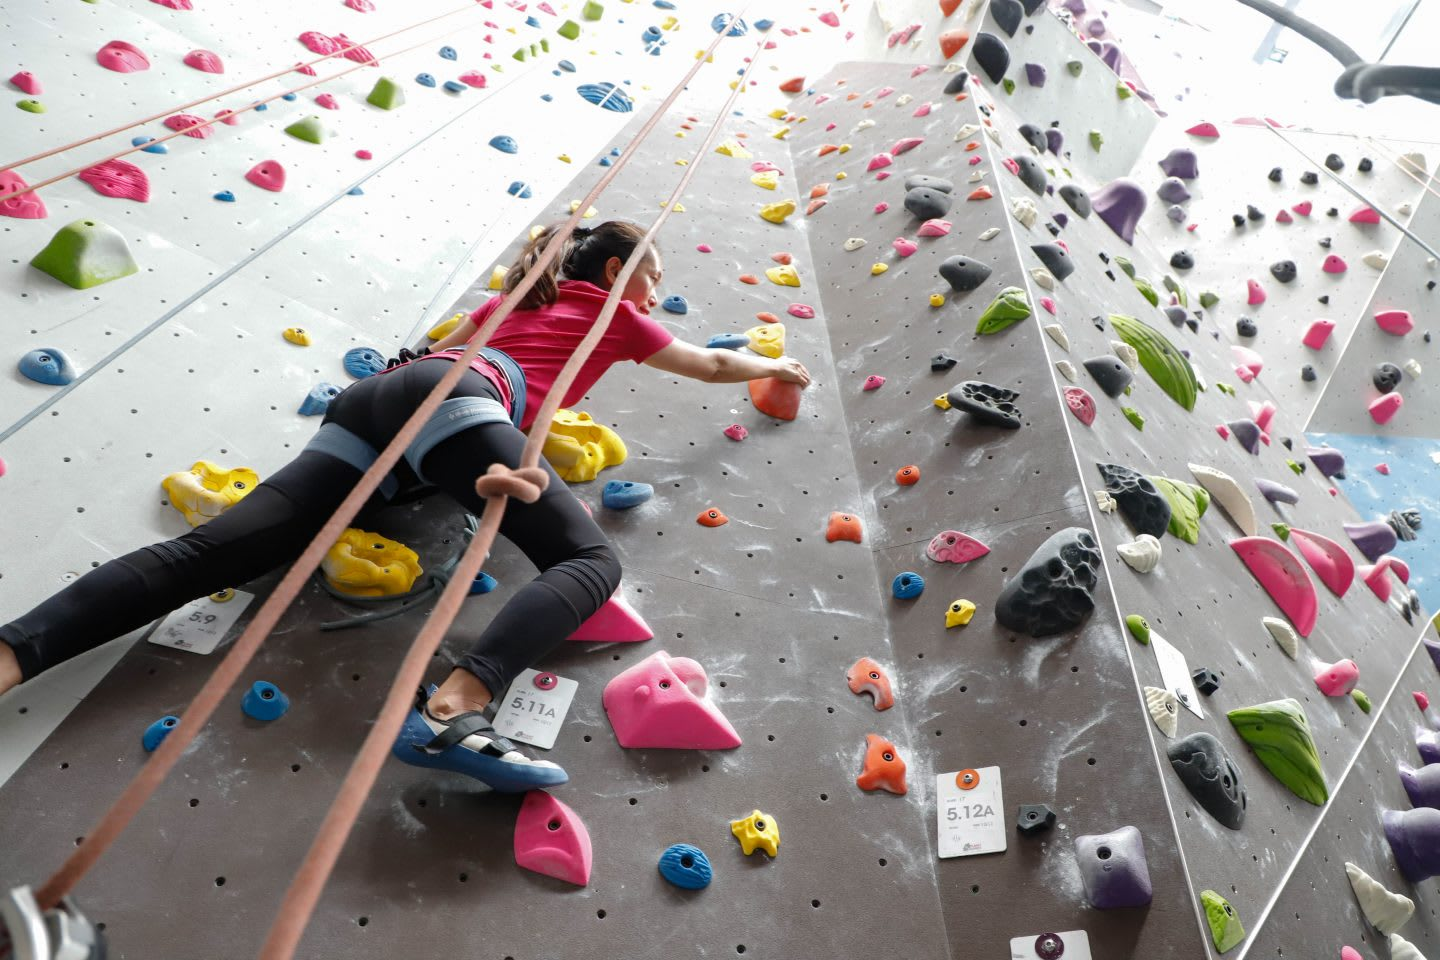 A woman climbing up an indoor climbing wall. challenge, overcoming fears, self-reflection, self-improvement, leadership skills, GamePlan A